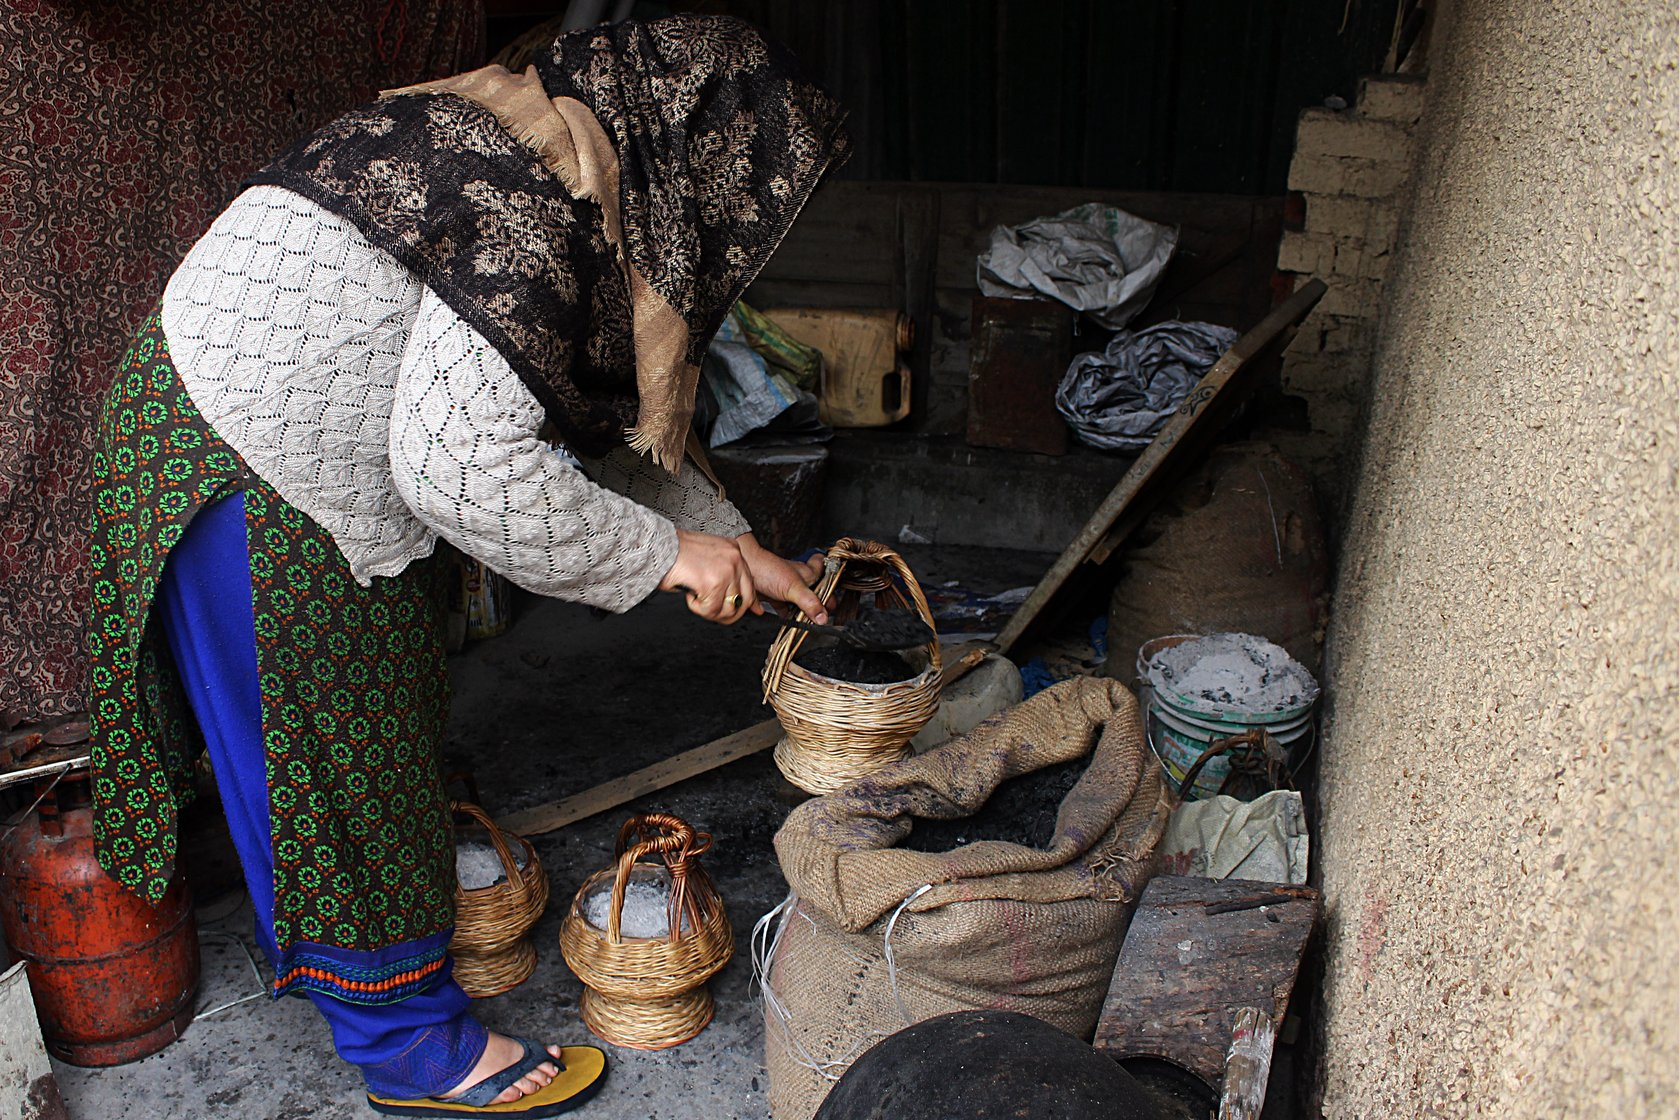 Firdousa Wani, 55, who lives in the Nawakadal area of Srinagar city, filling a kangri with charcoal in a shed (locally called ganjeen) outside her house early one morning